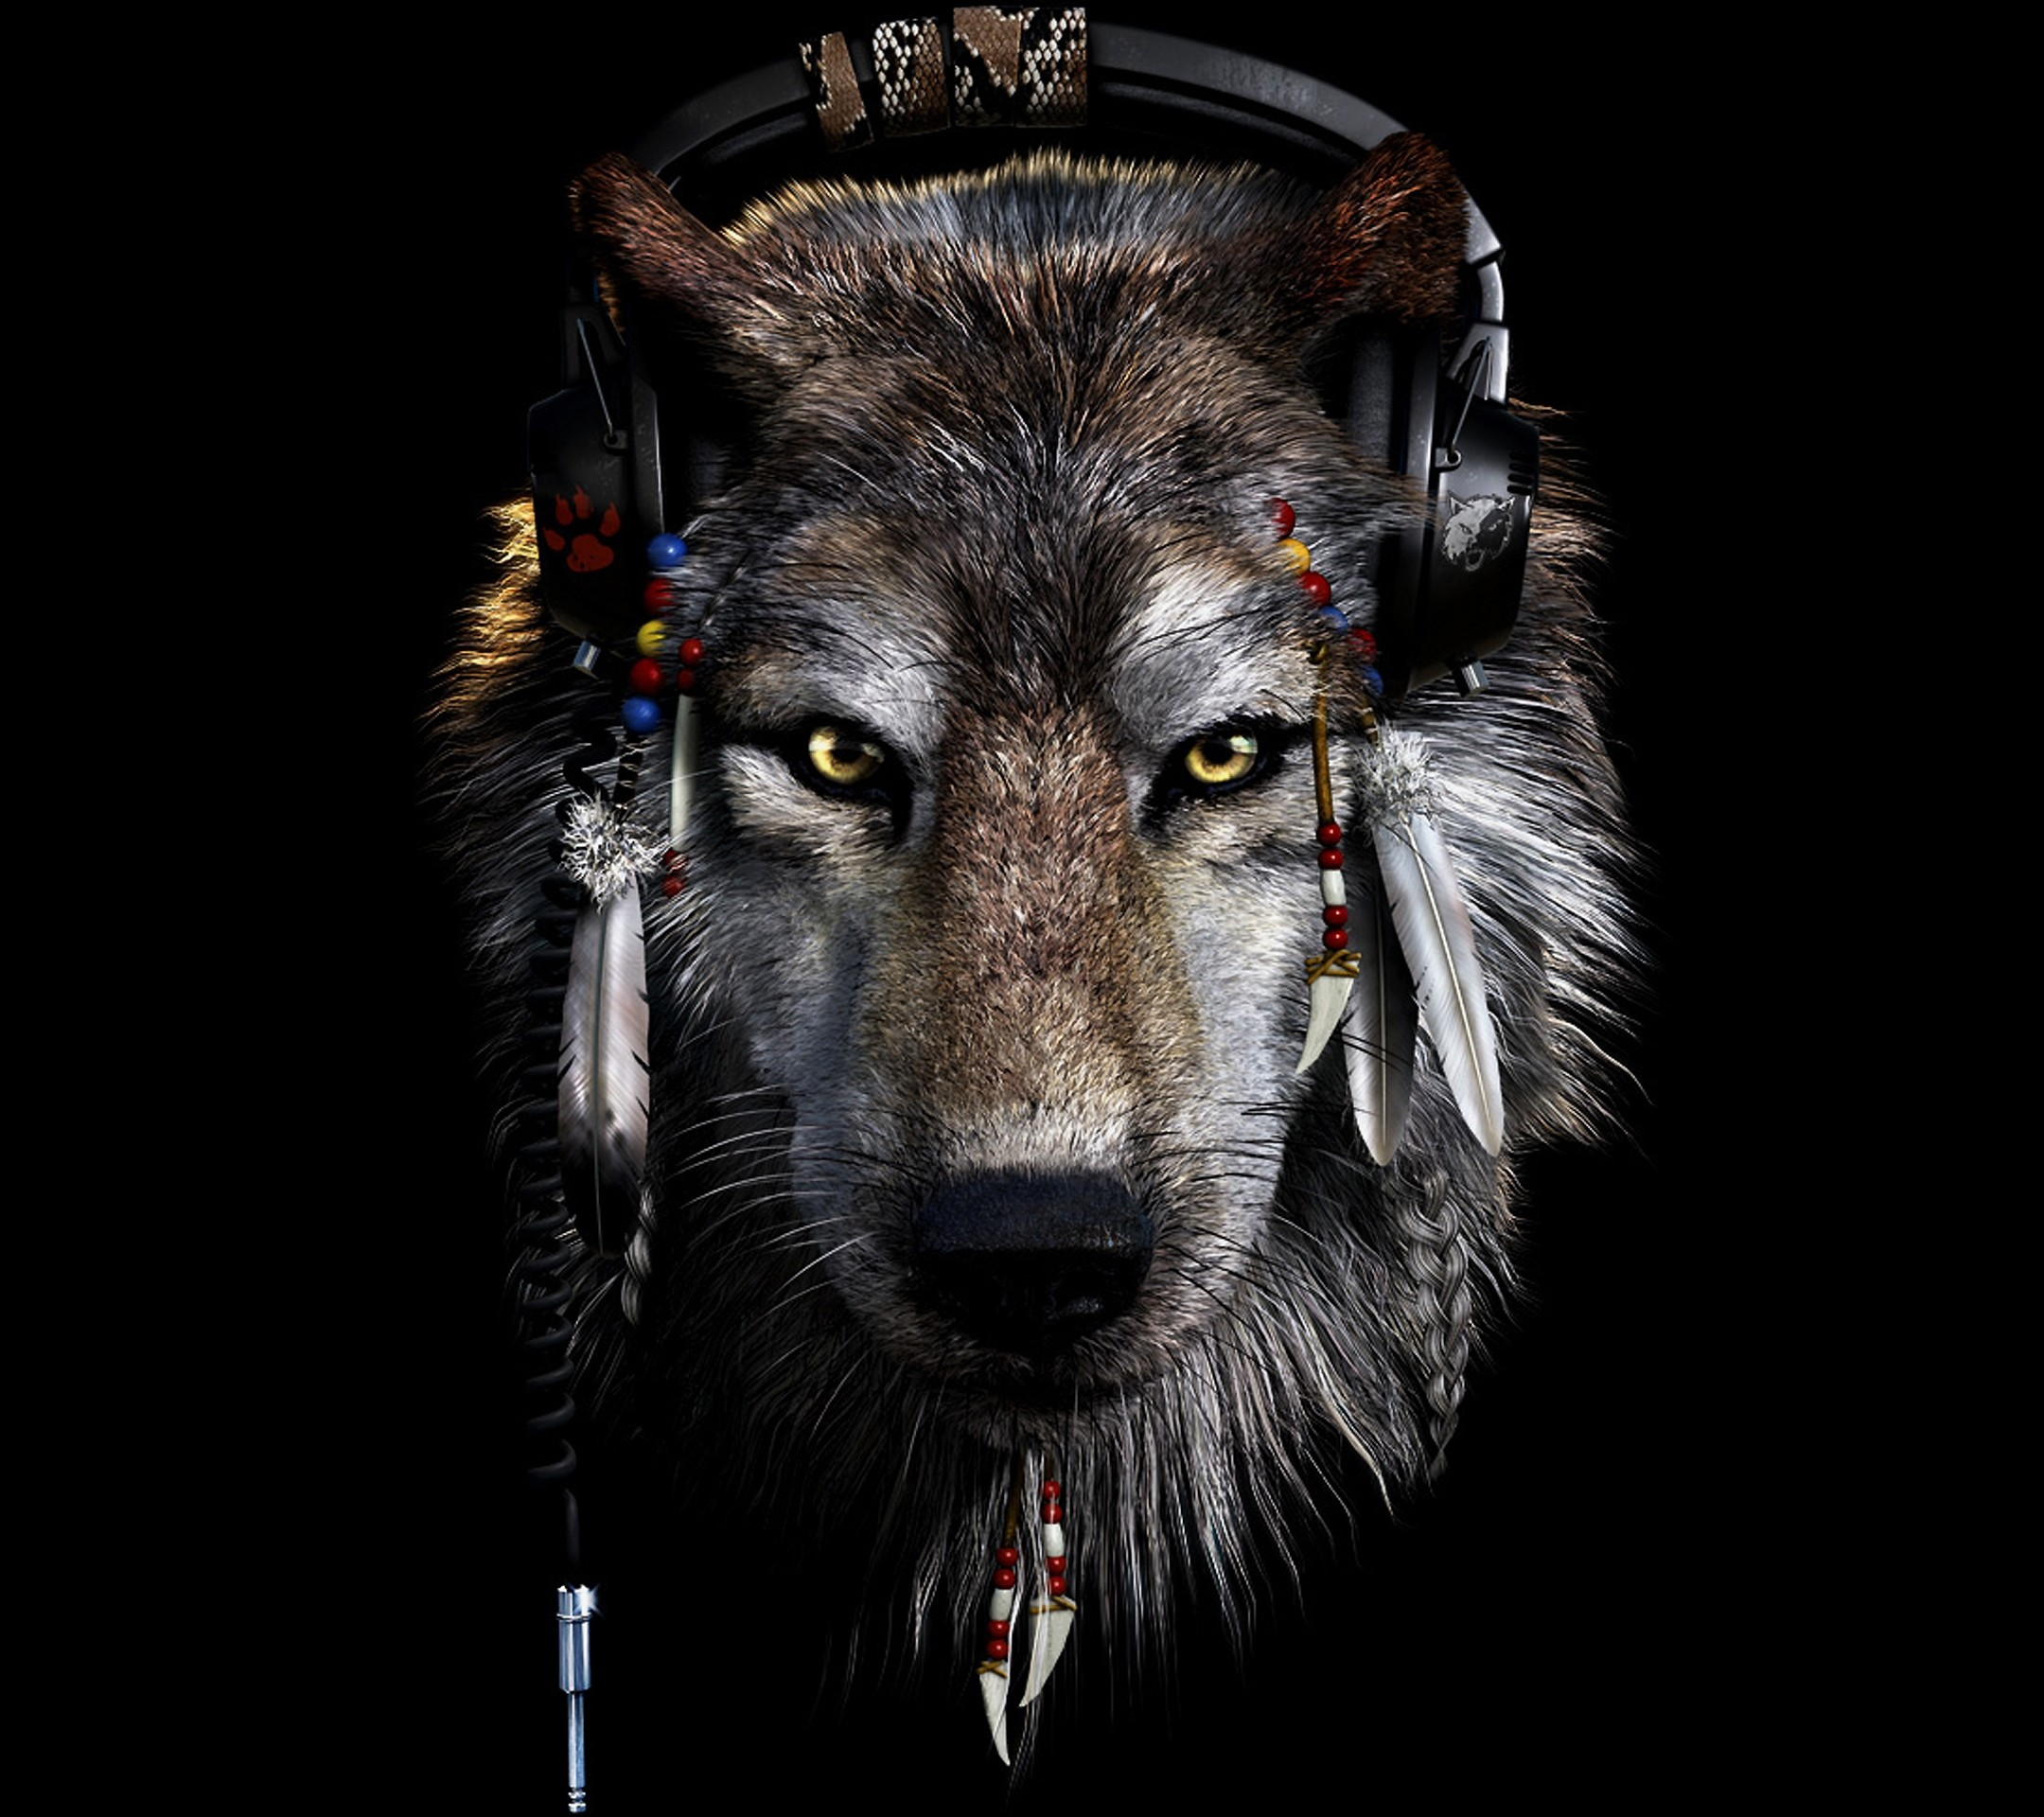 2160x1920 Wallpaper Indian wolf -| OutOfBit